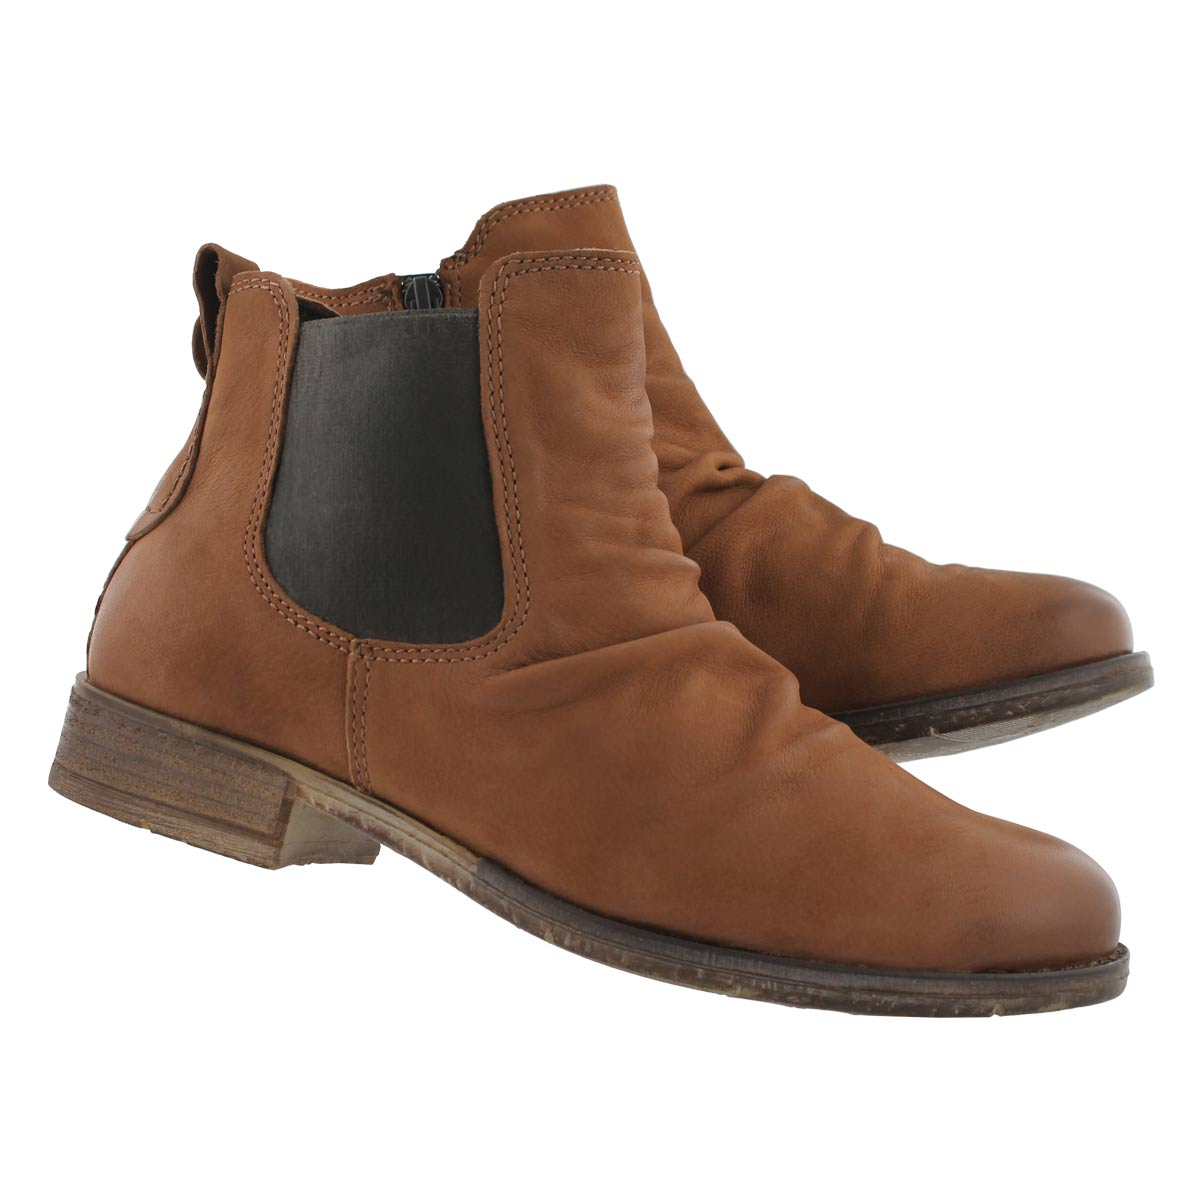 e5ee2731a8987 Josef Seibel. (17). Women's SIENNA 59 castagne slip on boots. $174.99. Sale  $159.99. QUICK VIEW Add To Bag